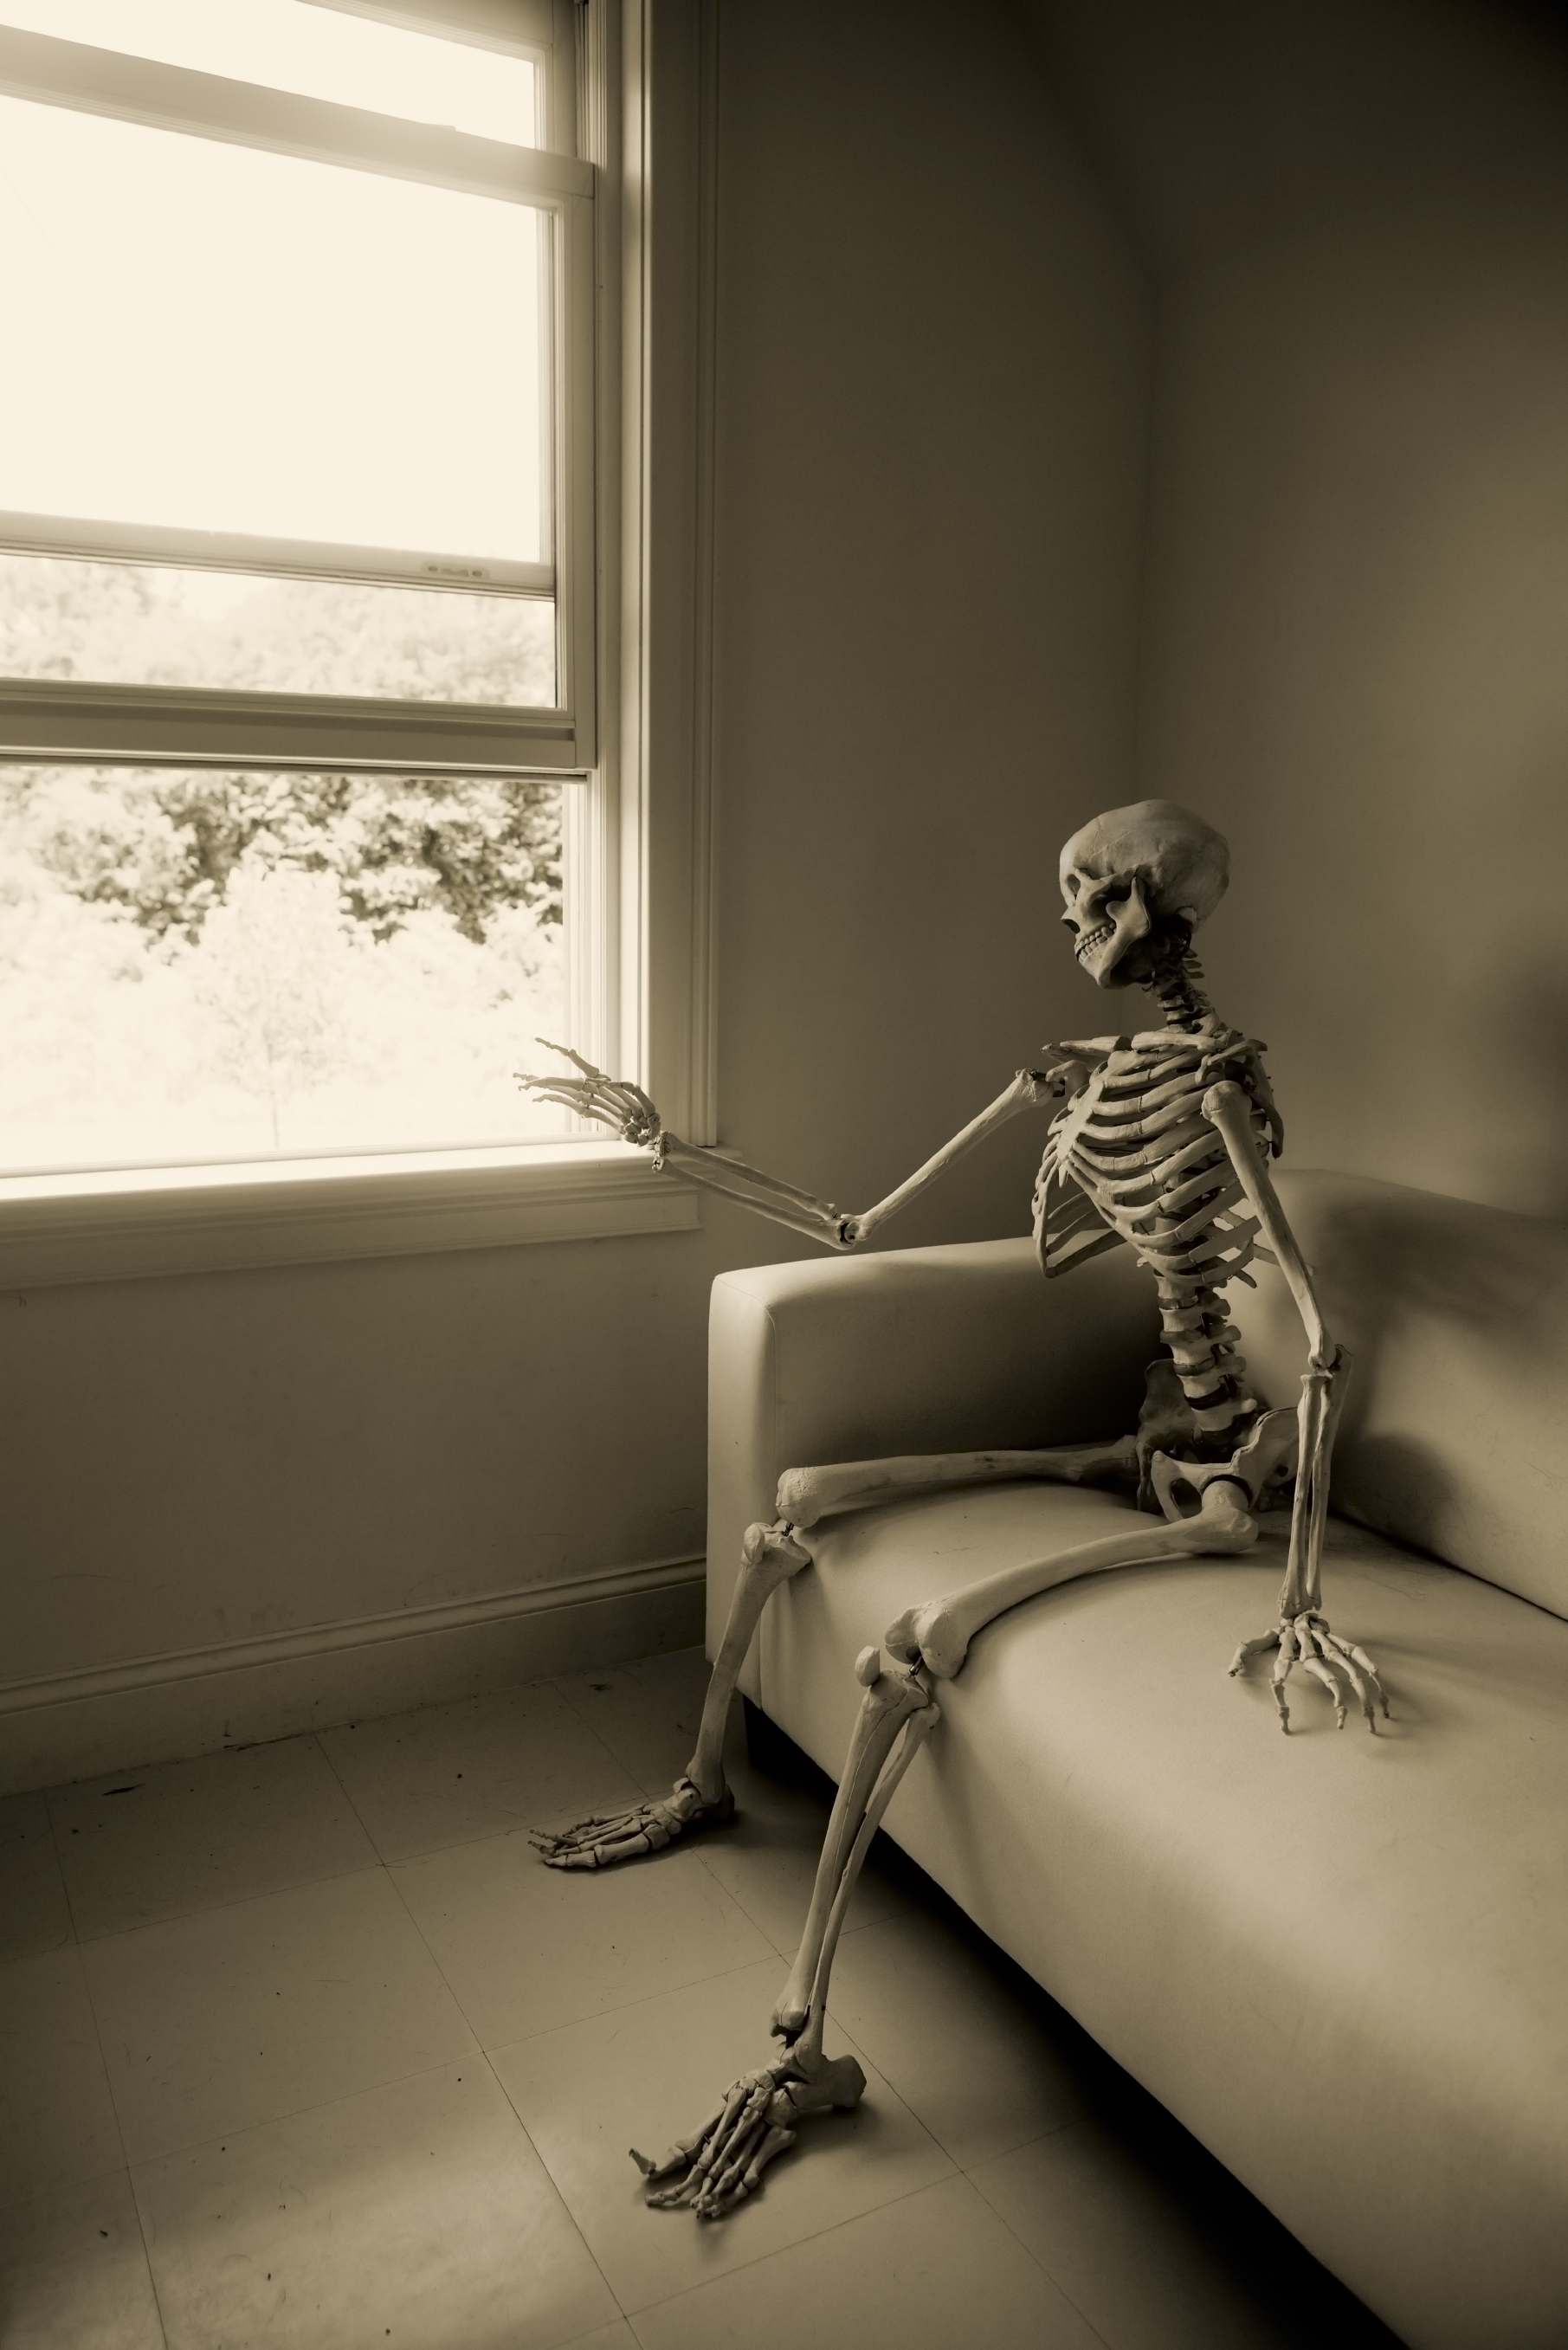 [Image: skeleton-waiting-543592bcbbc65.jpg]